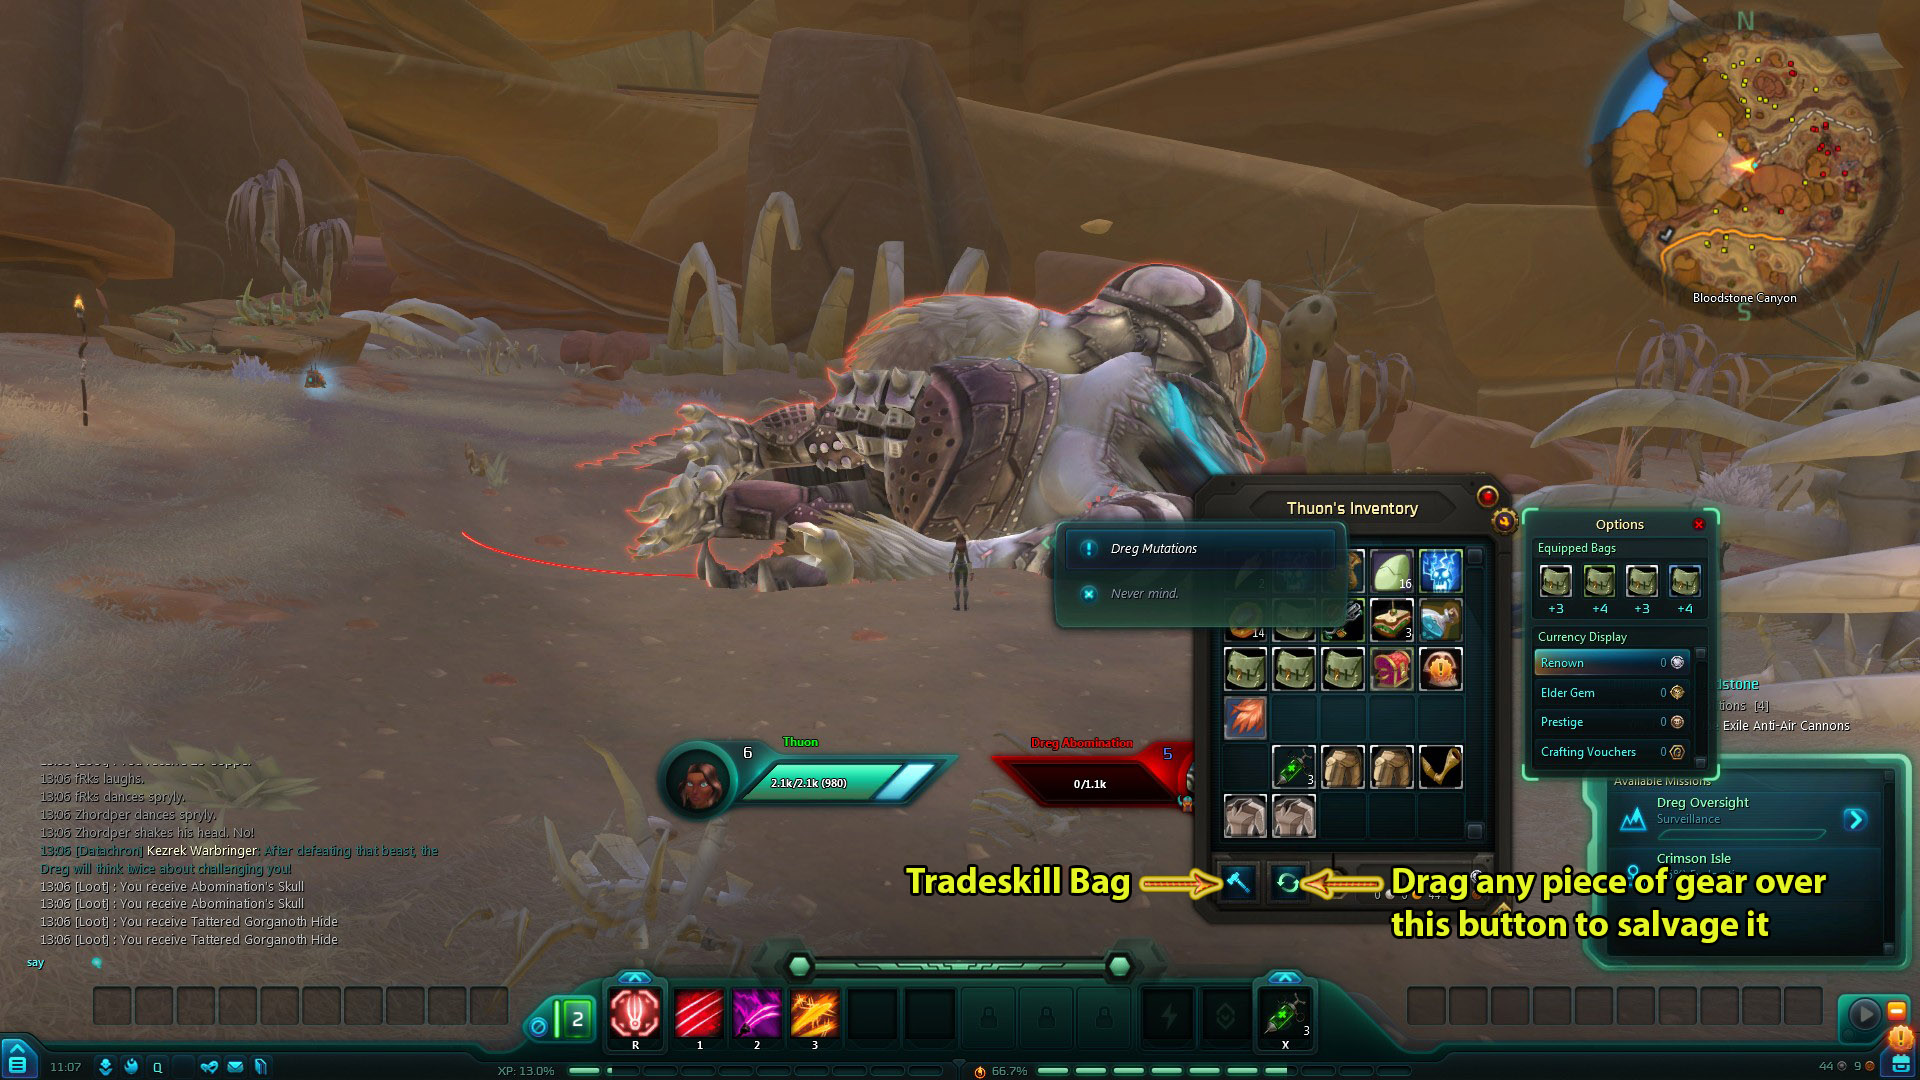 Salvage Tradeskill Bag